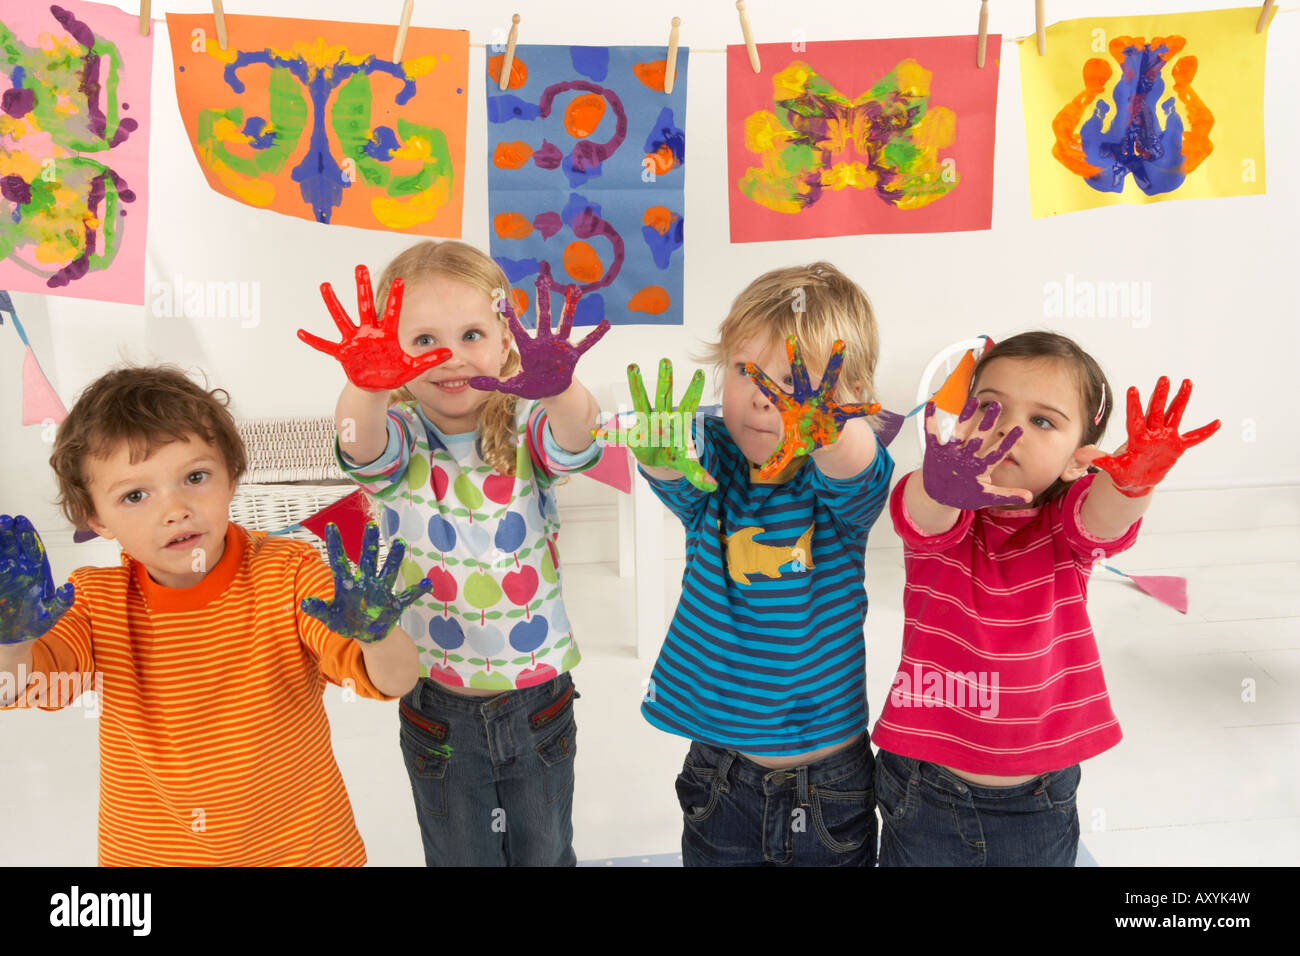 four children hold up their hands which are covered in paint from finger painting - Stock Image